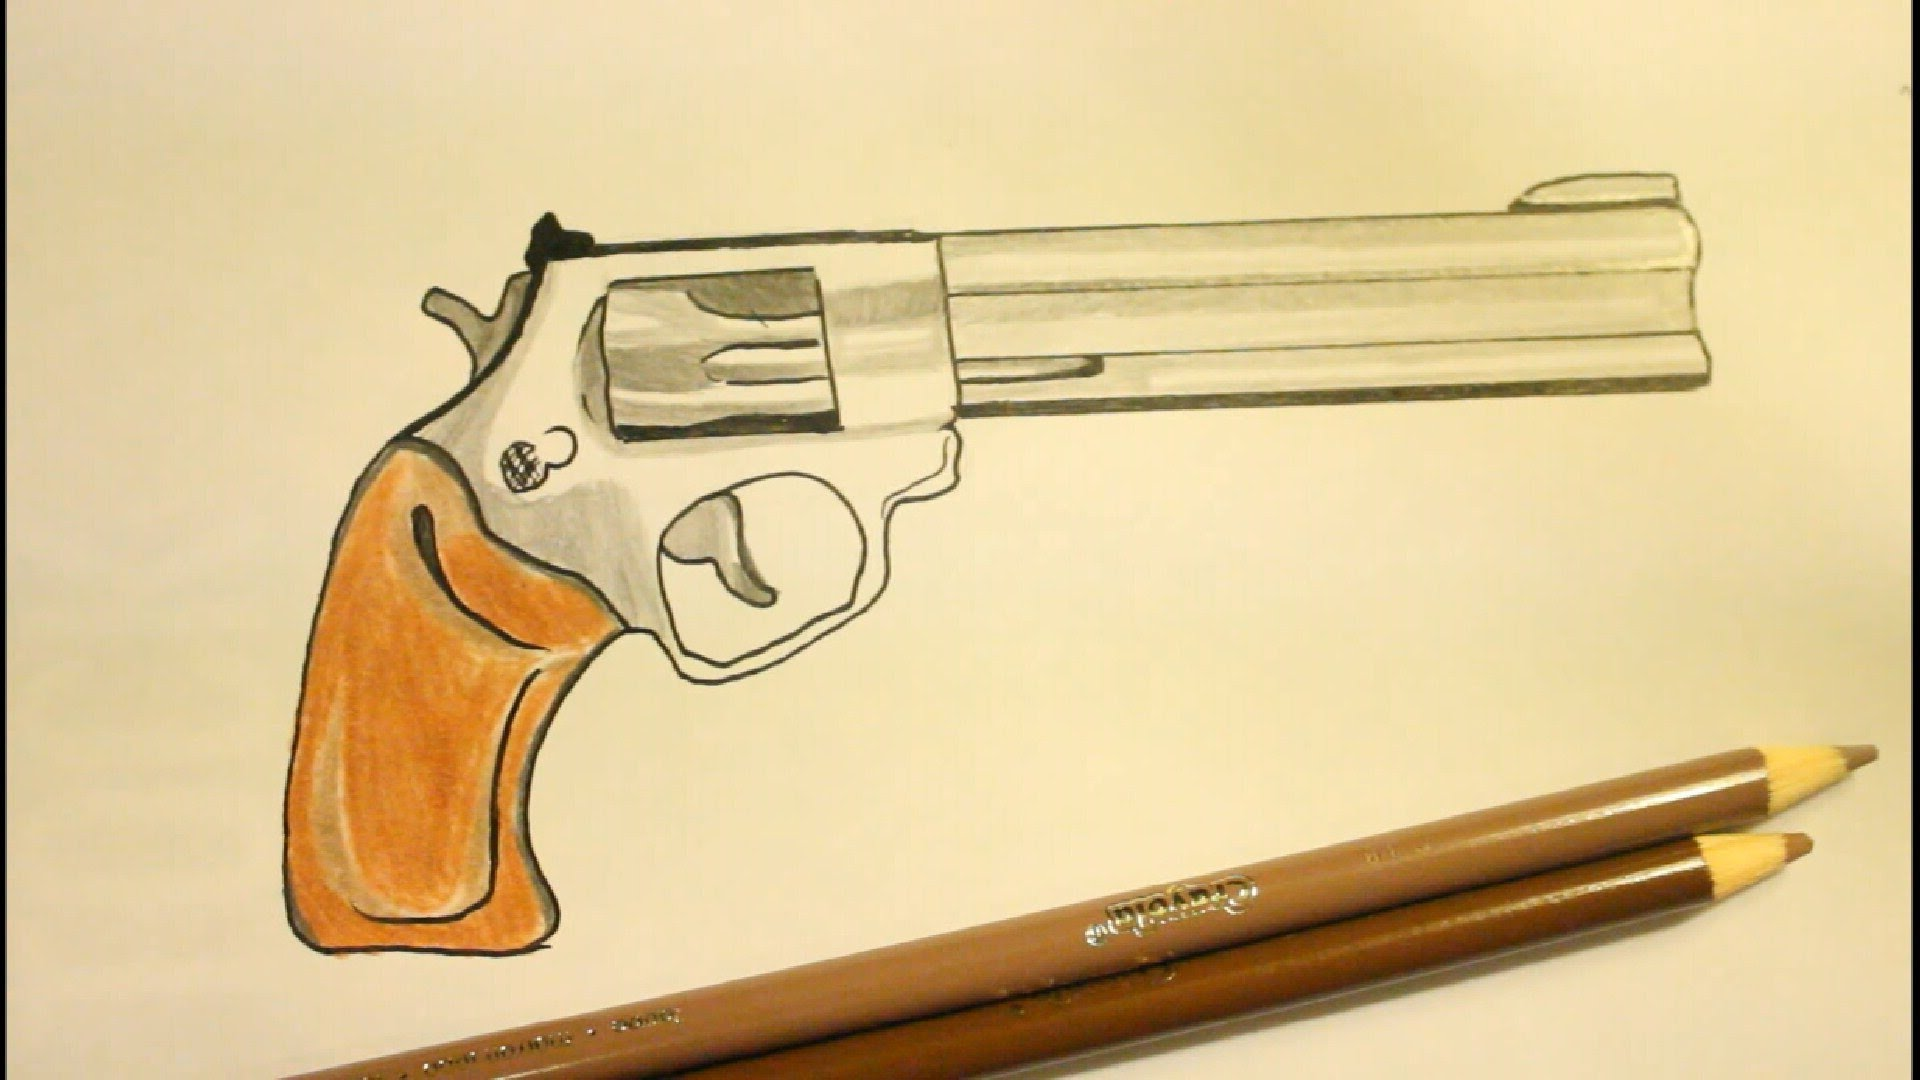 1920x1080 How To Draw A Pistolstep By Stepgunon Paper.